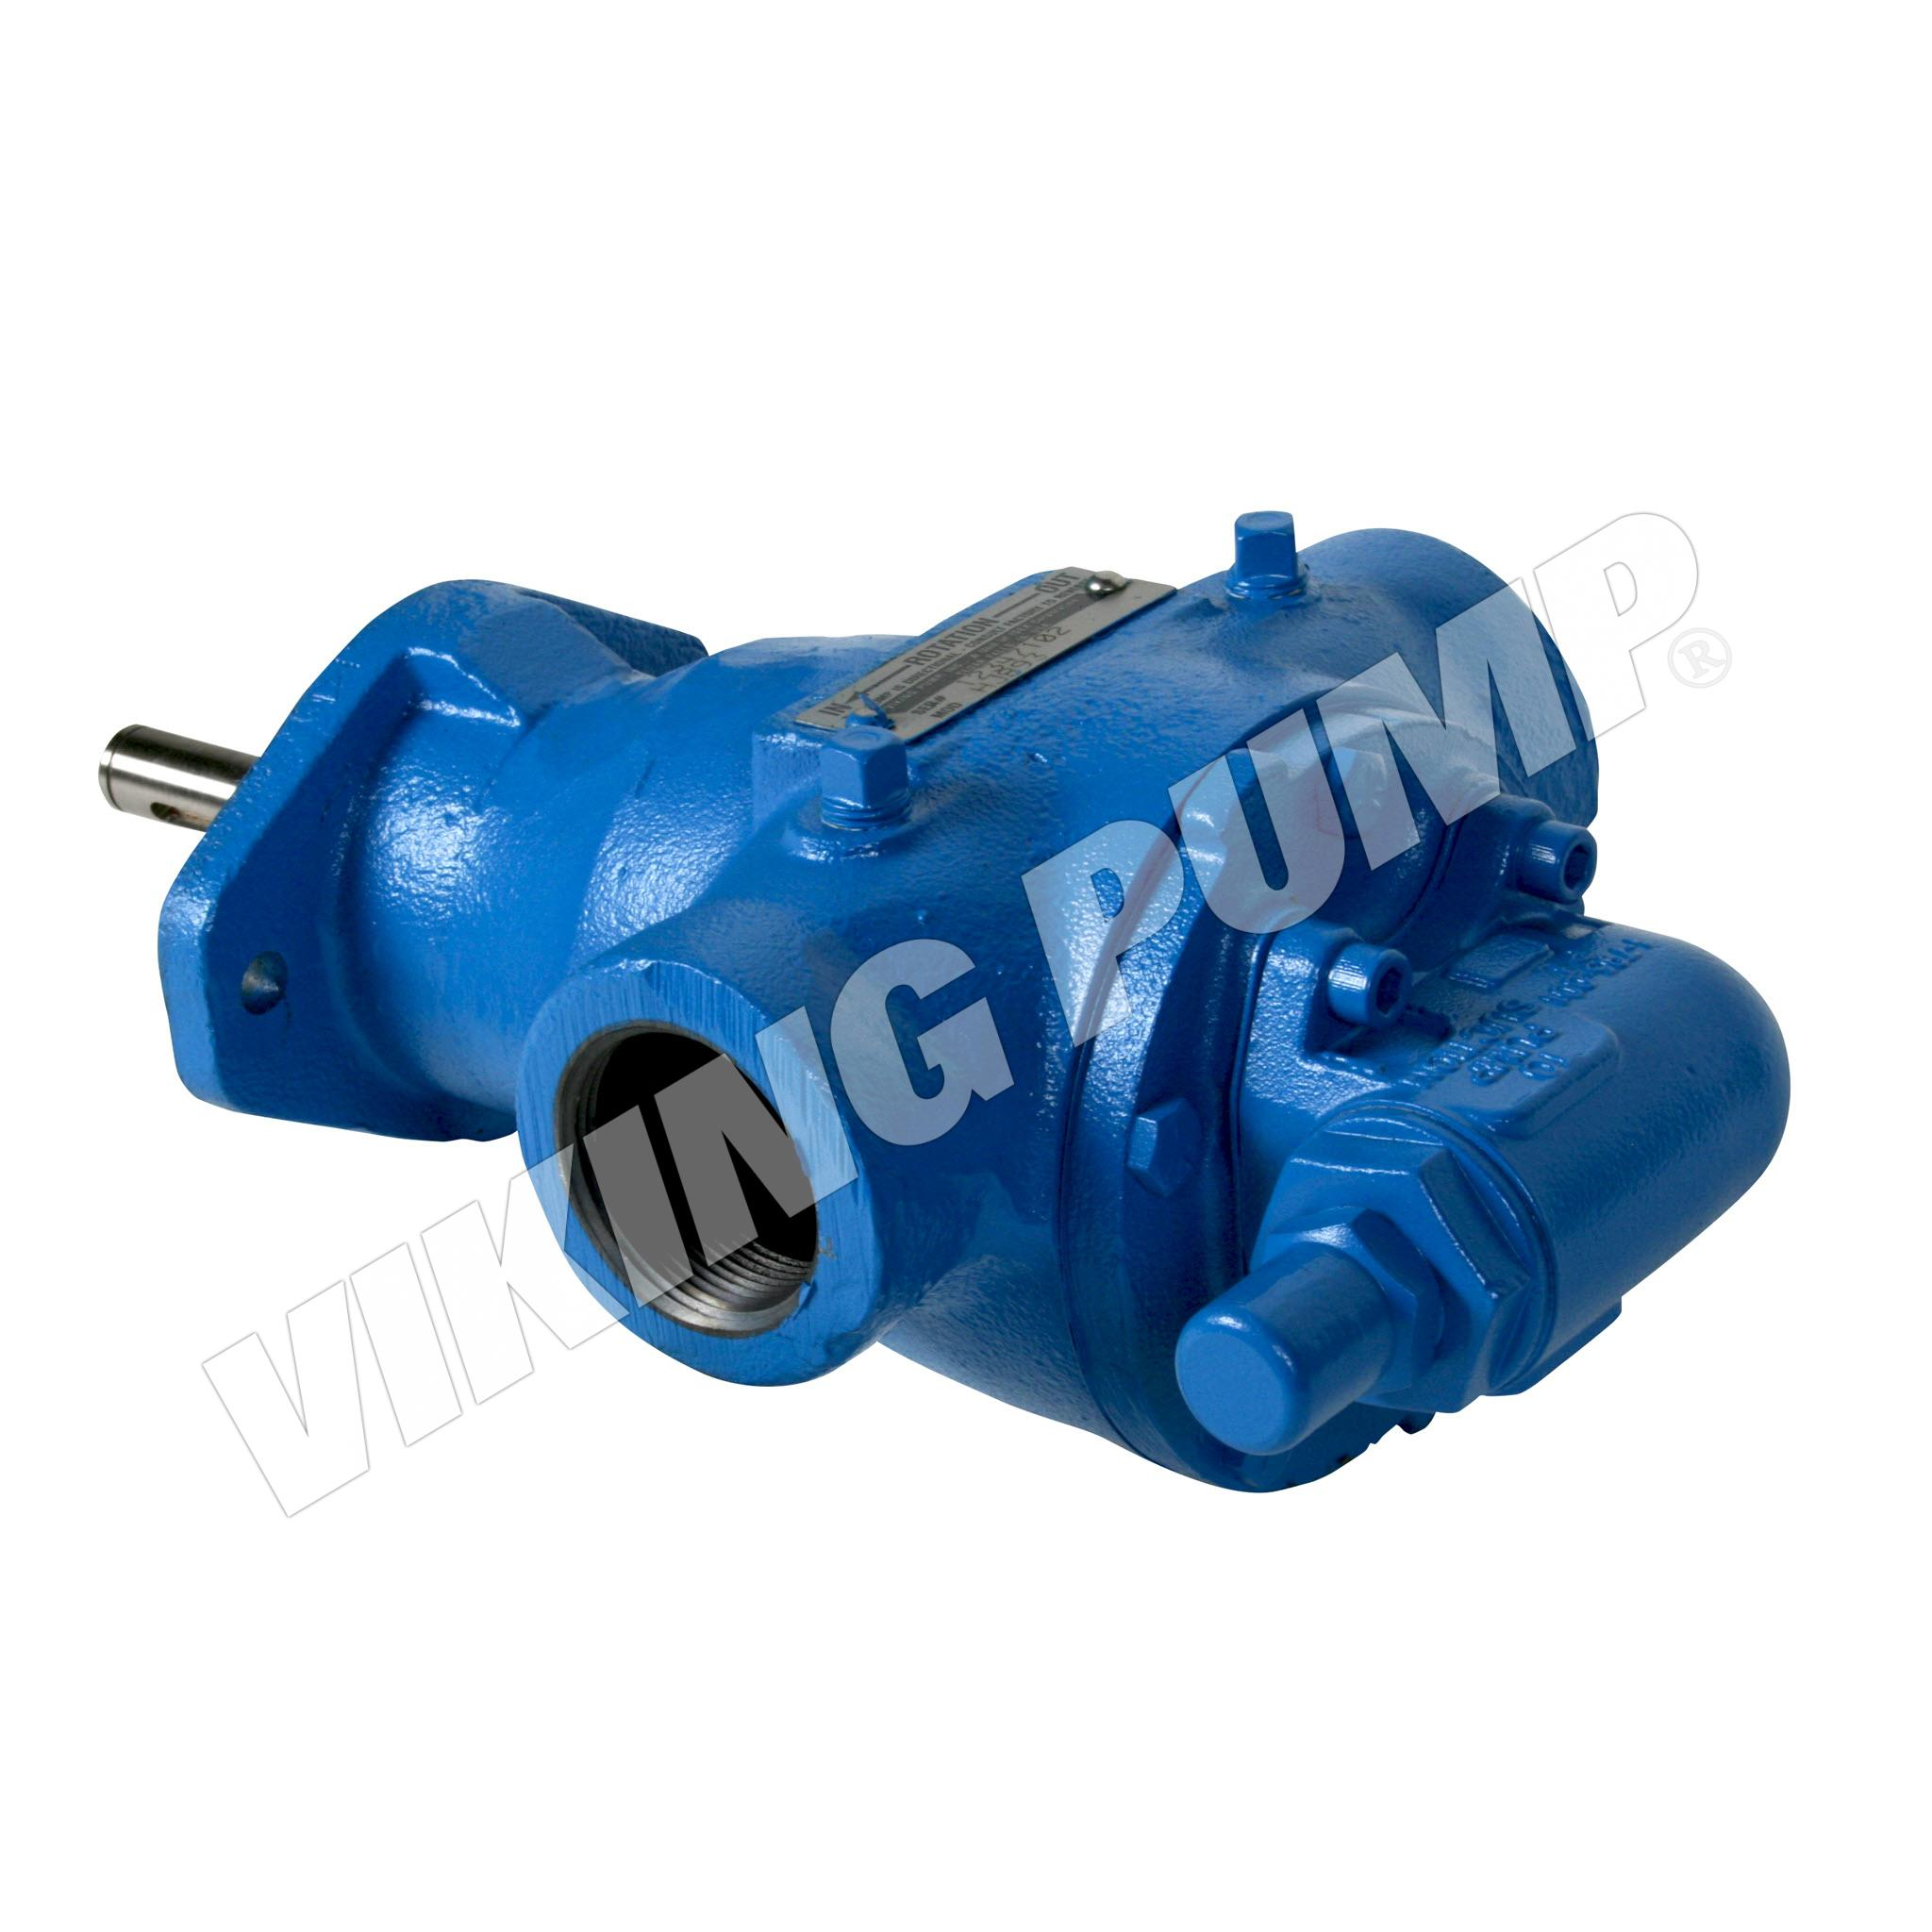 Model HJ893, Foot Mount Pump for Mag Drive, less Magnetic Coupling